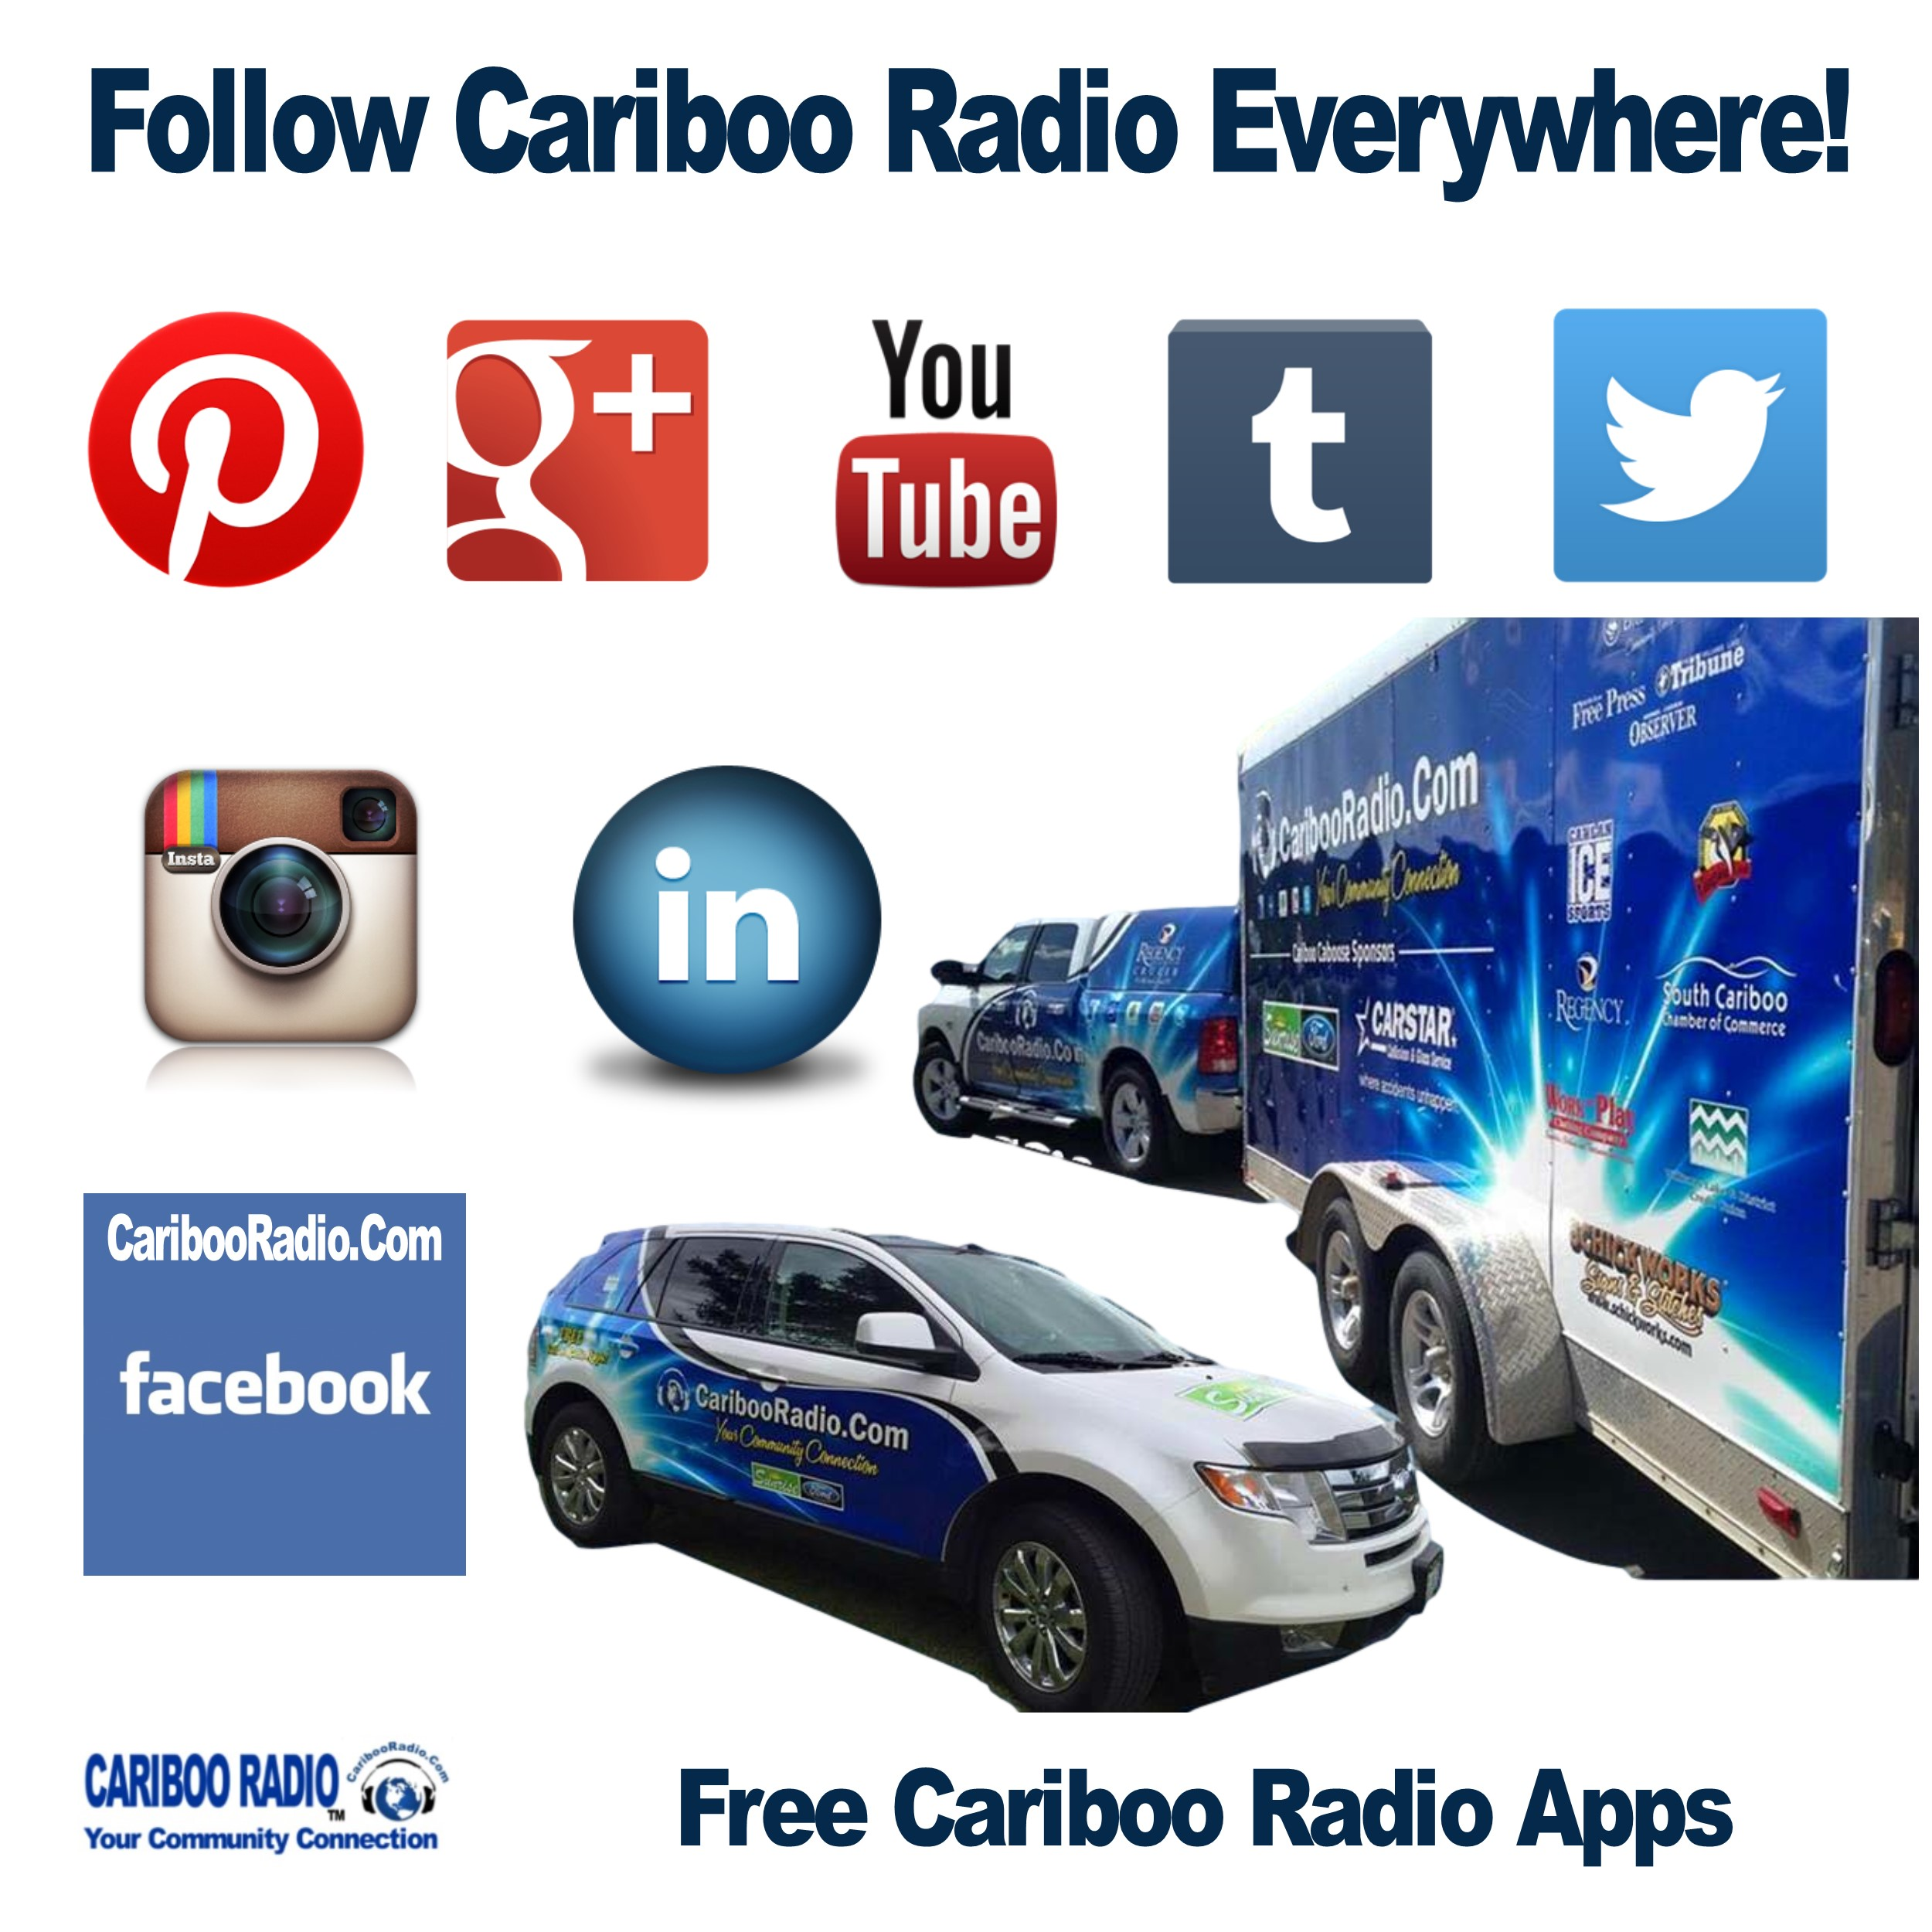 Cariboo-Radio-Web-Ads